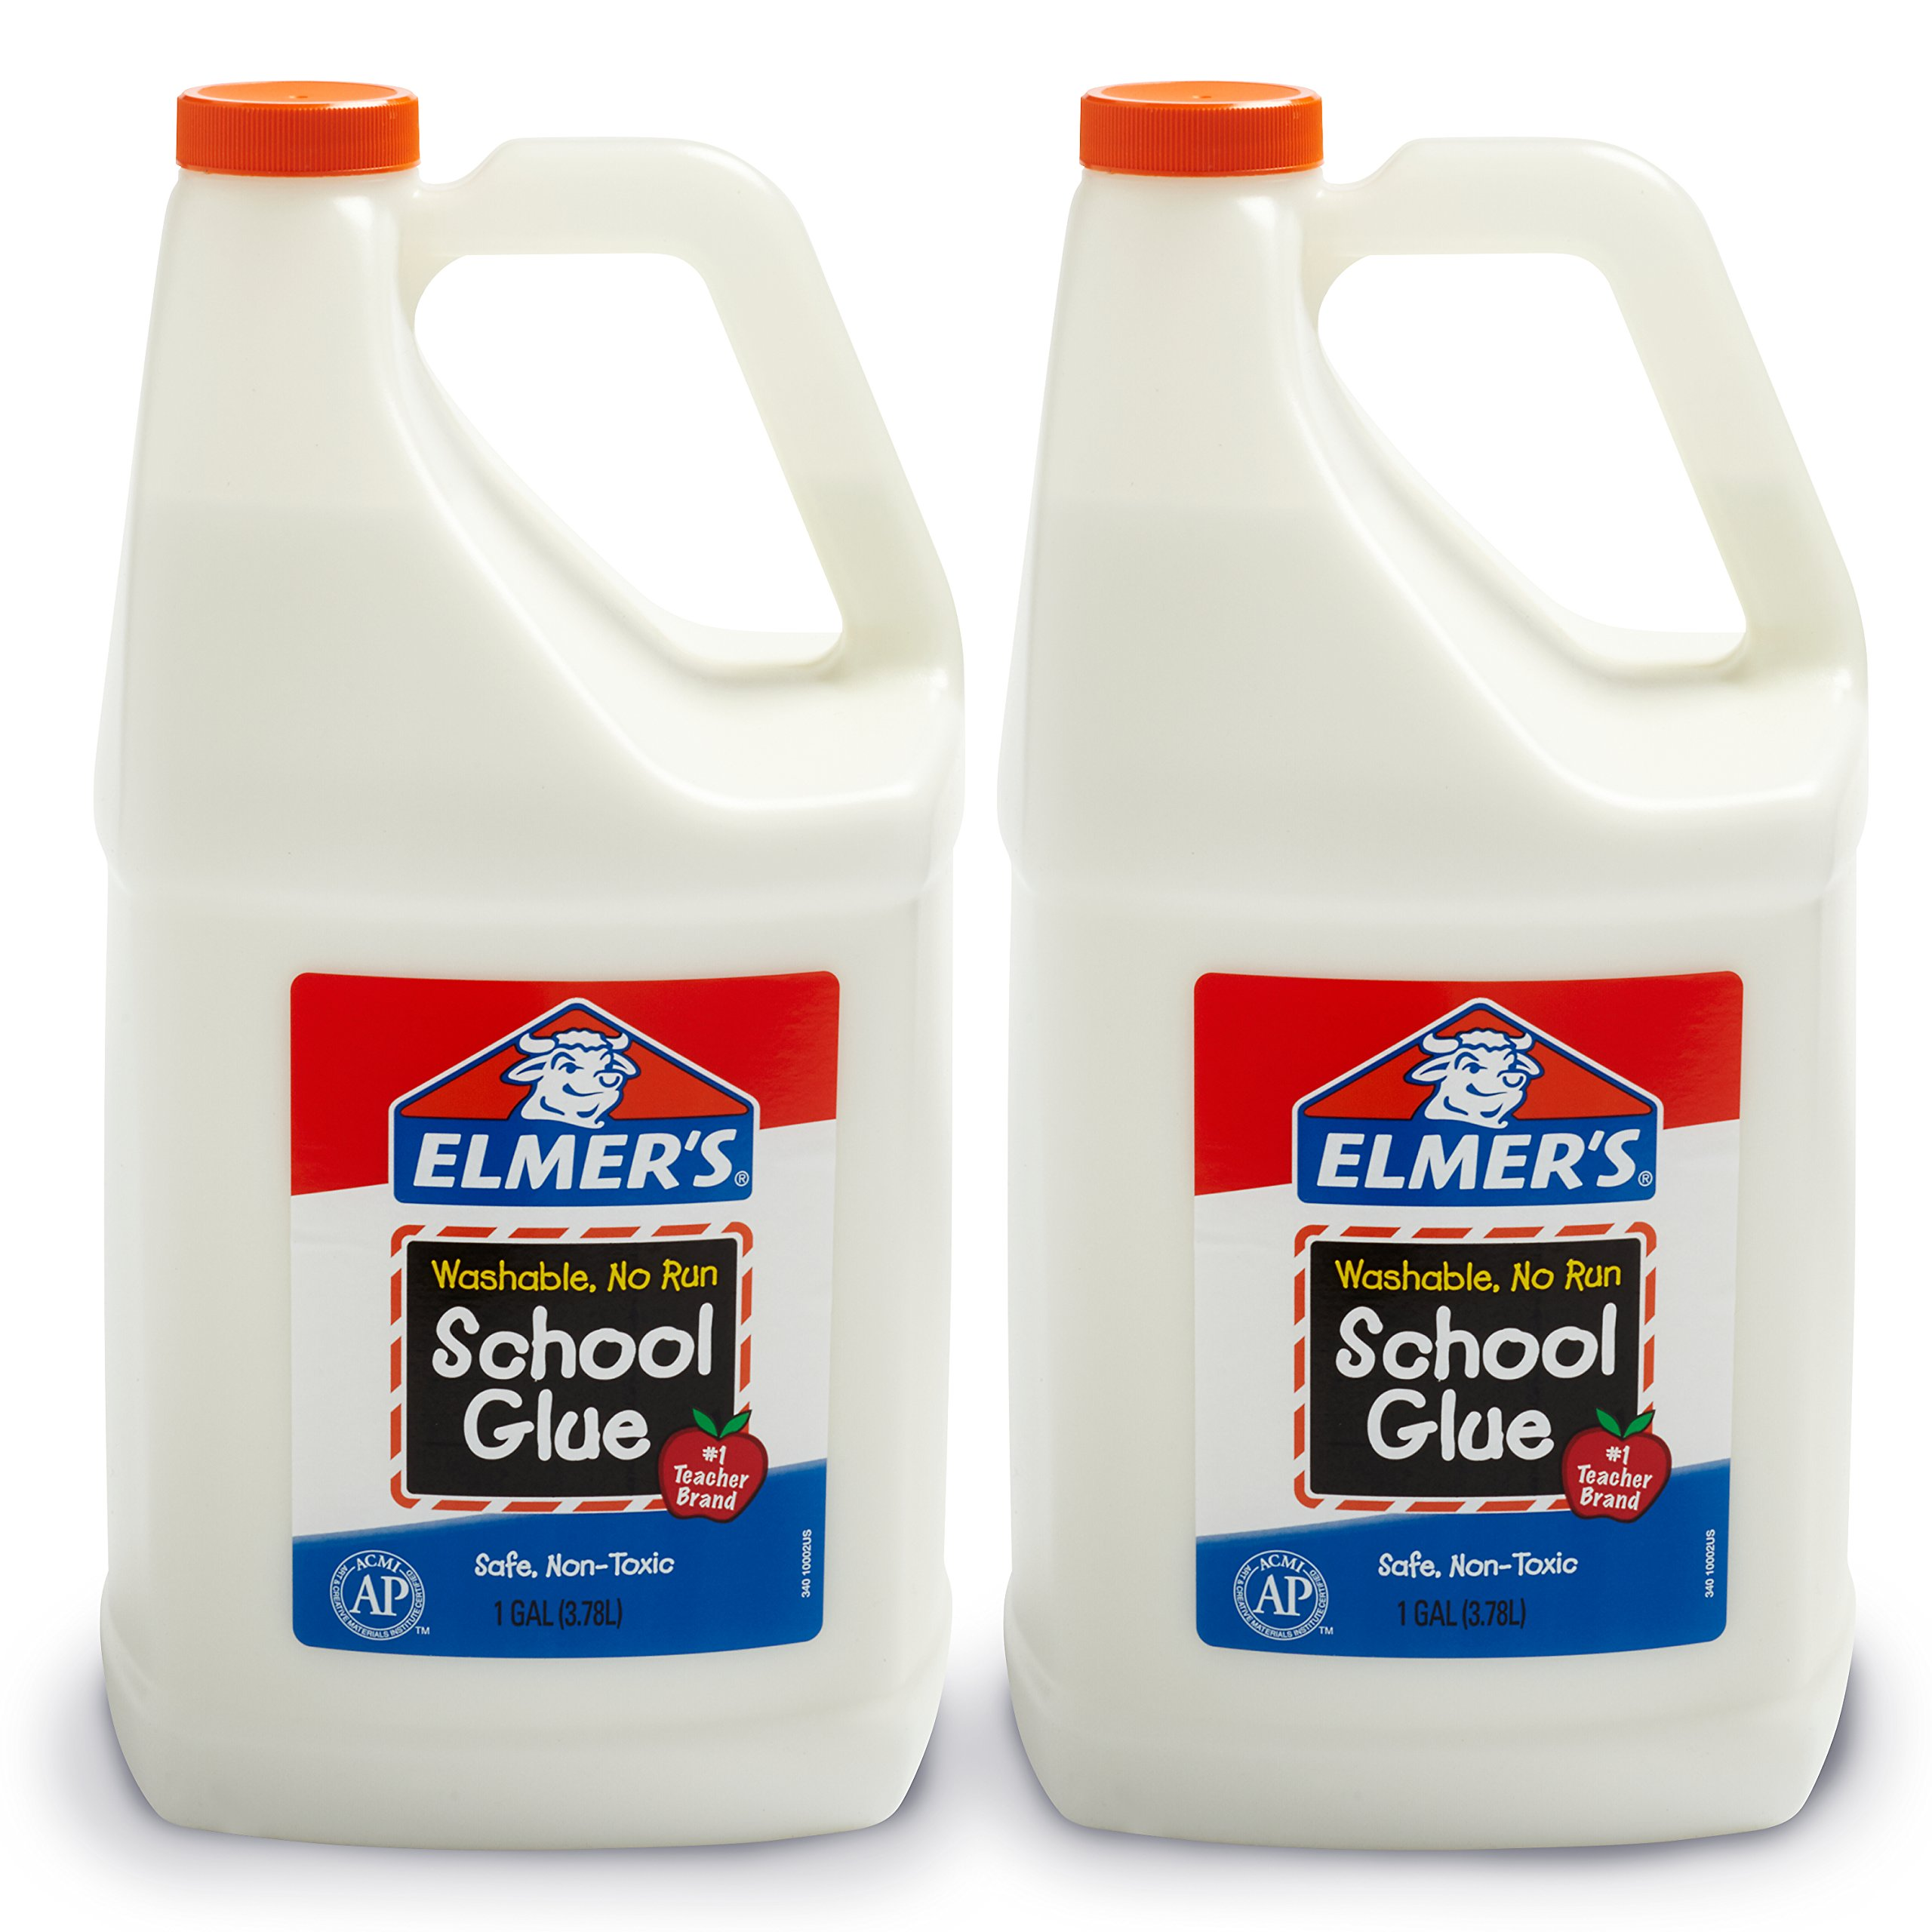 Elmer's Liquid School Glue, Washable, 1 Gallon, 2 Count - Great for Making Slime by Elmer's